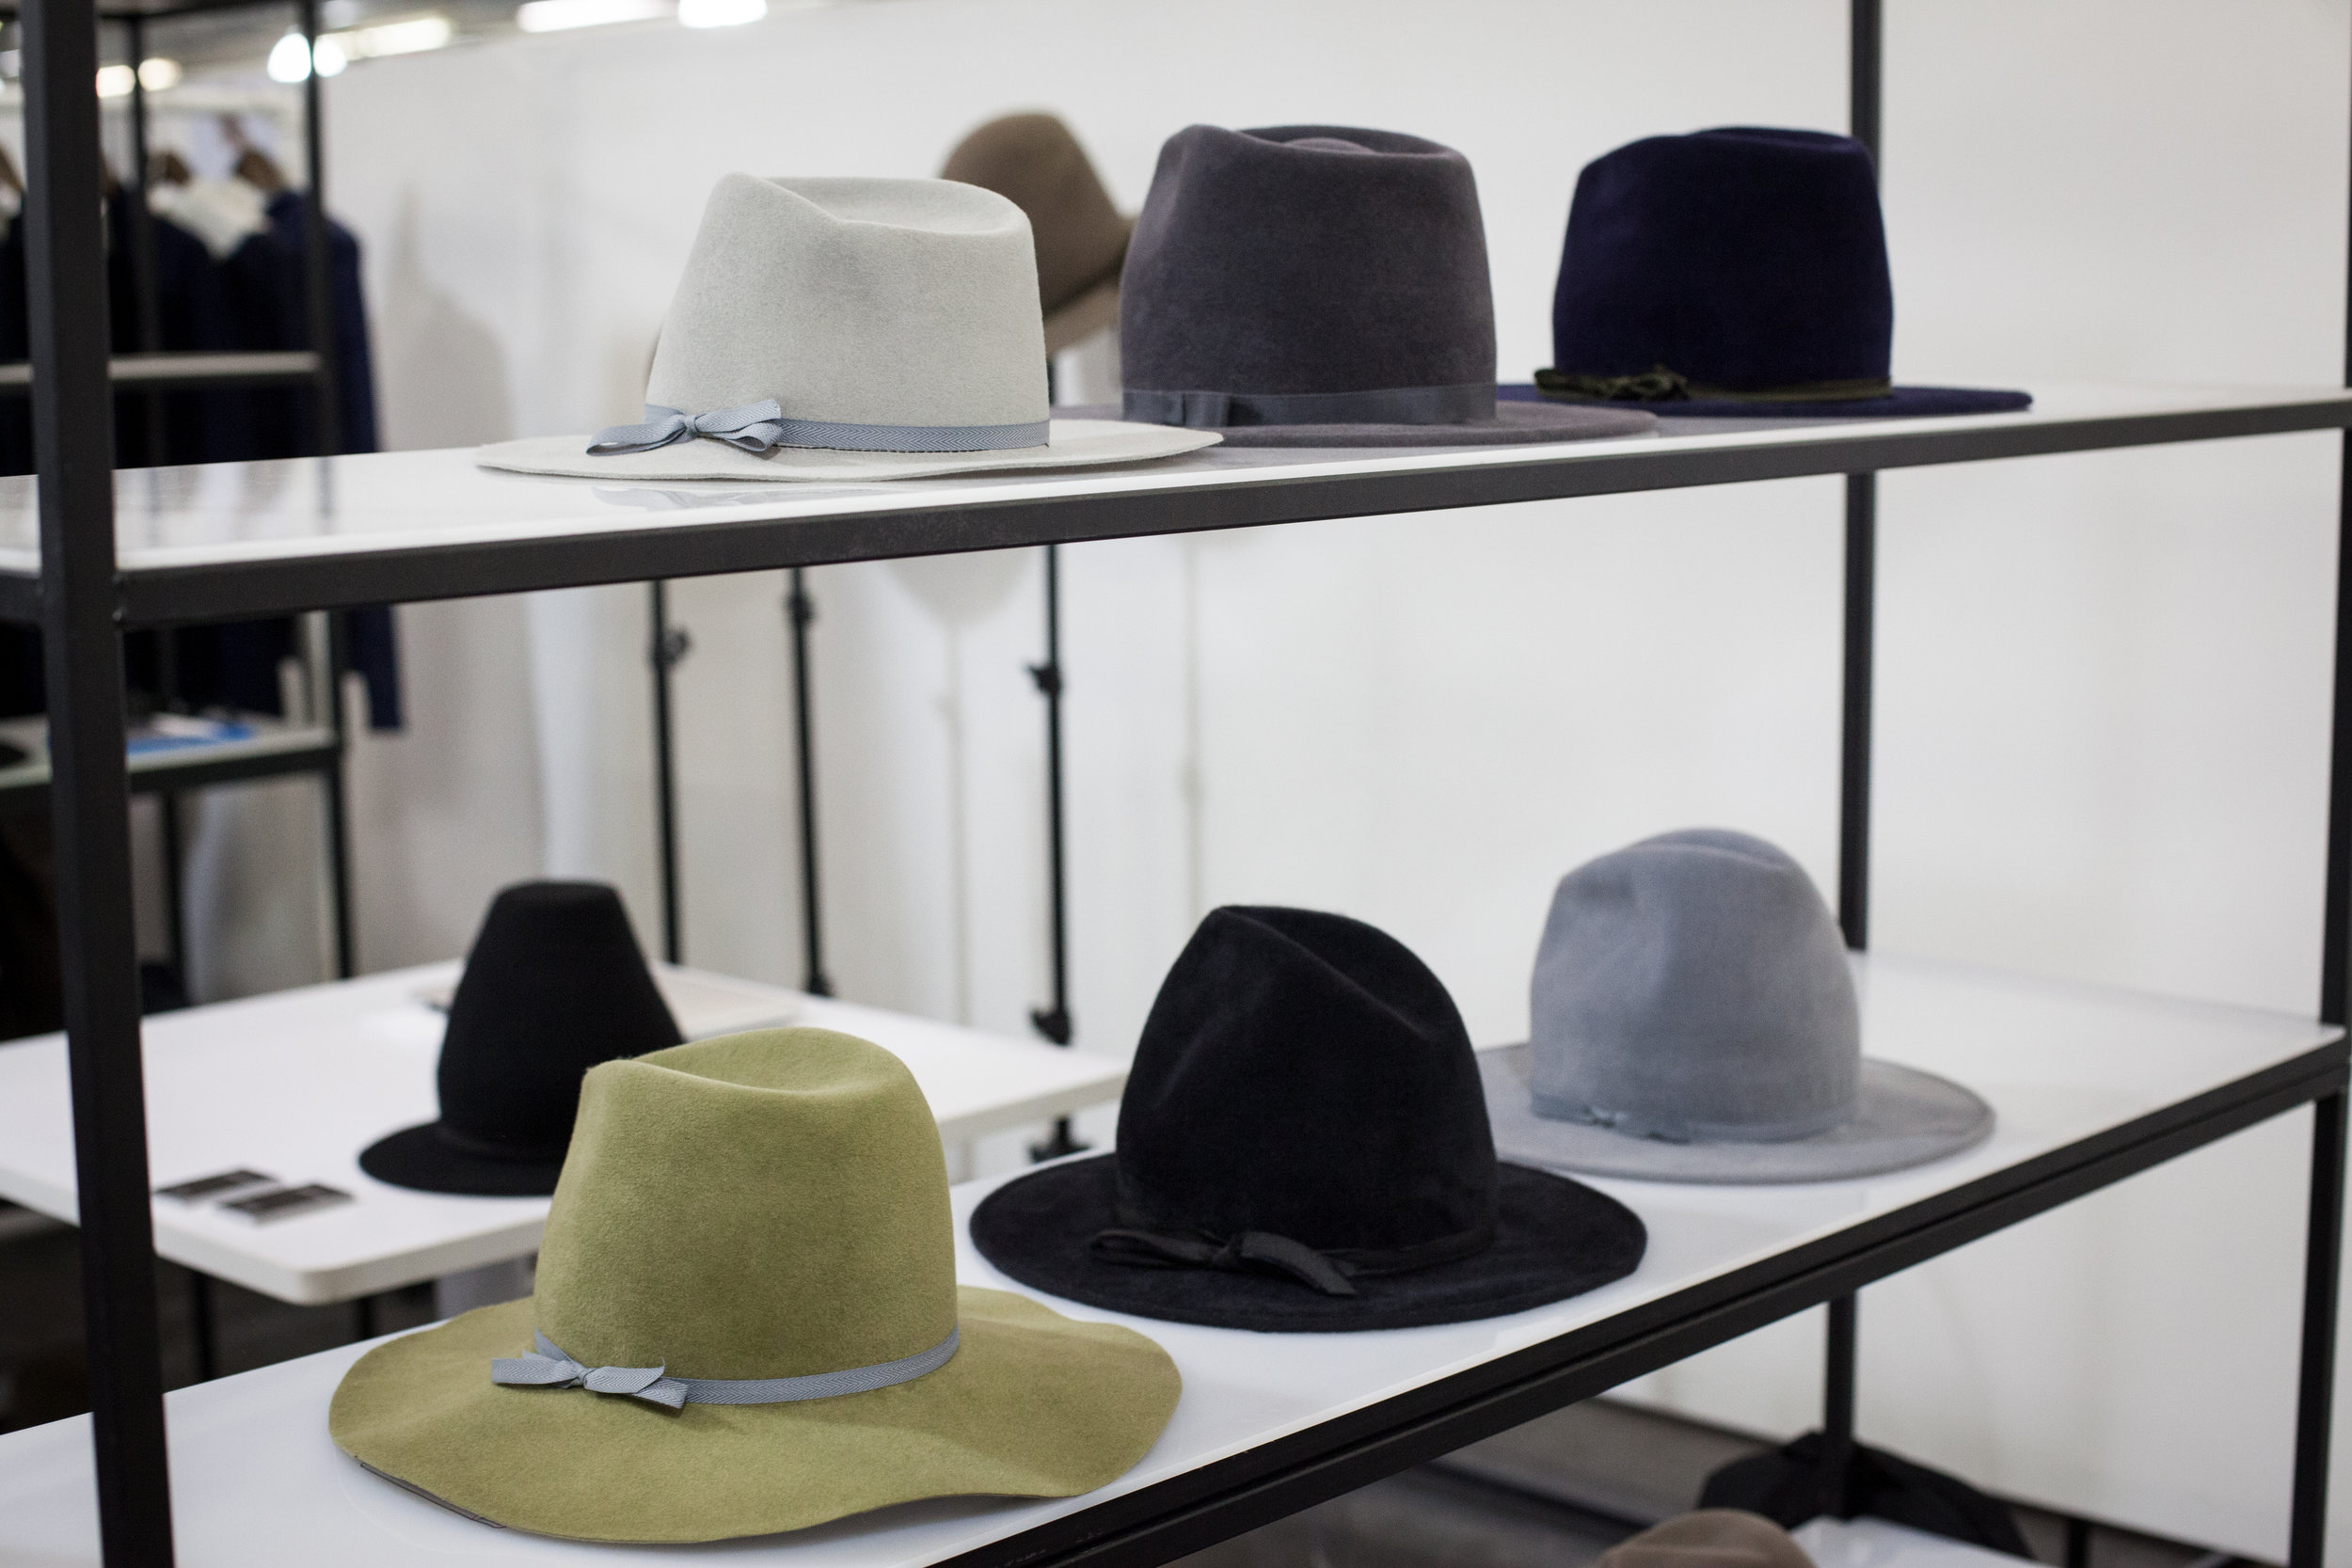 Rodney's display of hats.